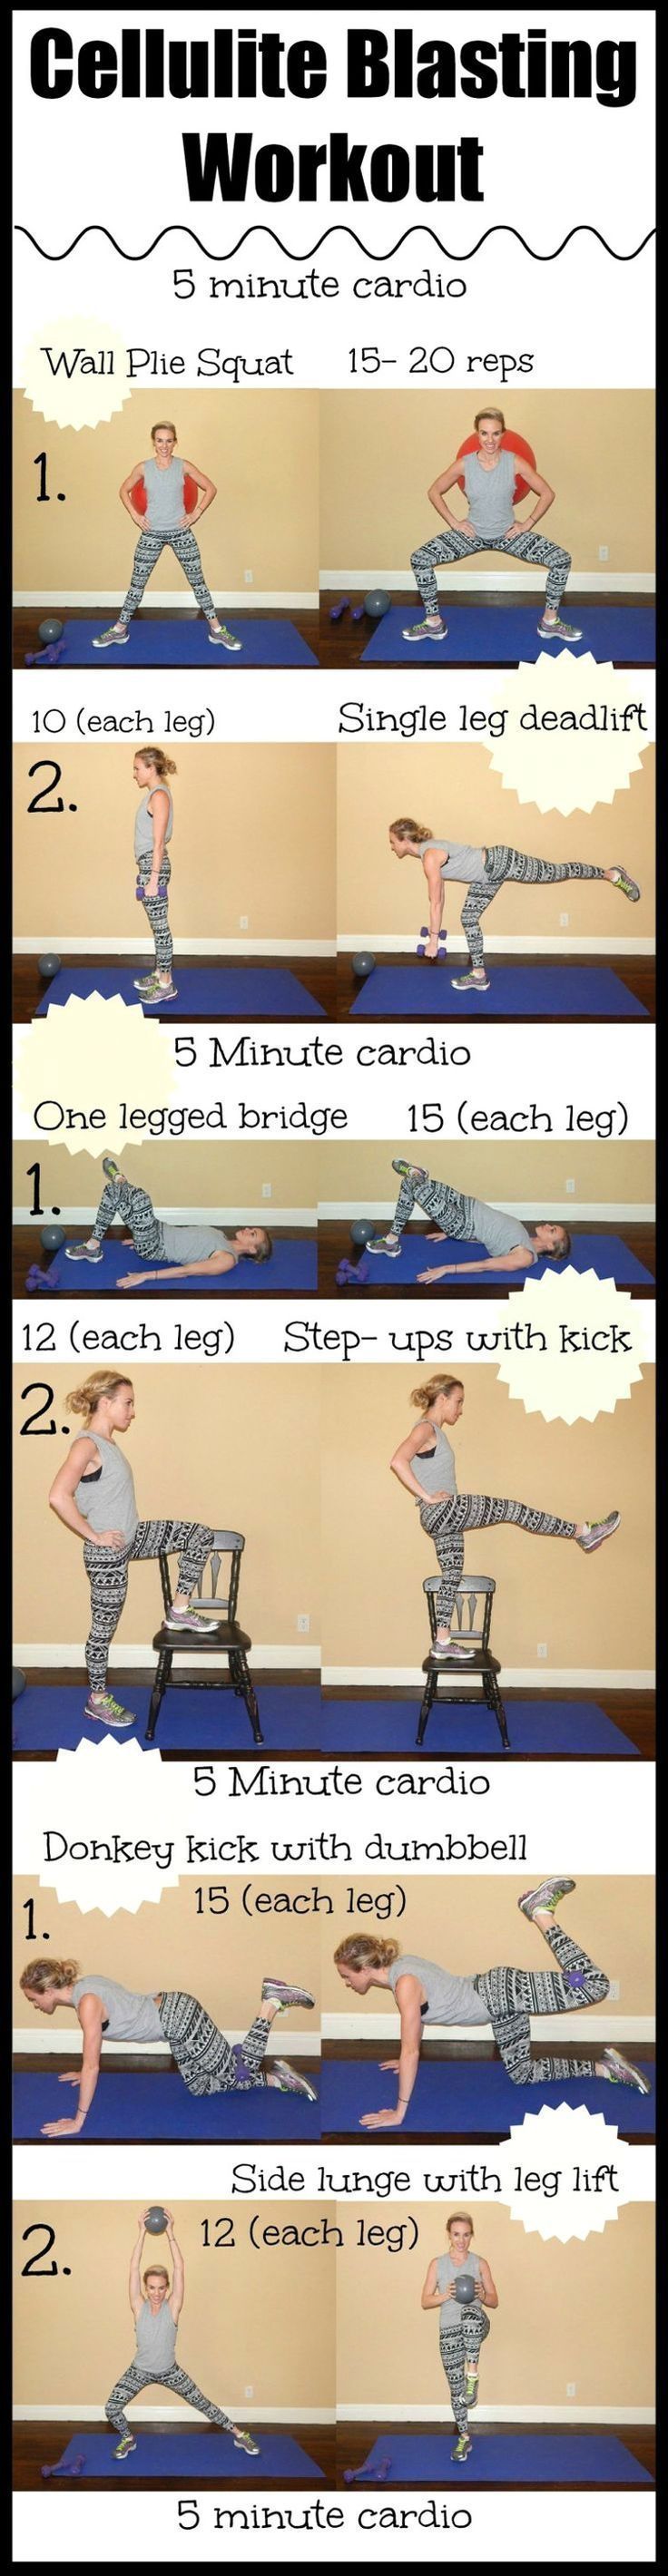 Cellulite Blasting Workout. The summer is coming and we all want to look fantastic....